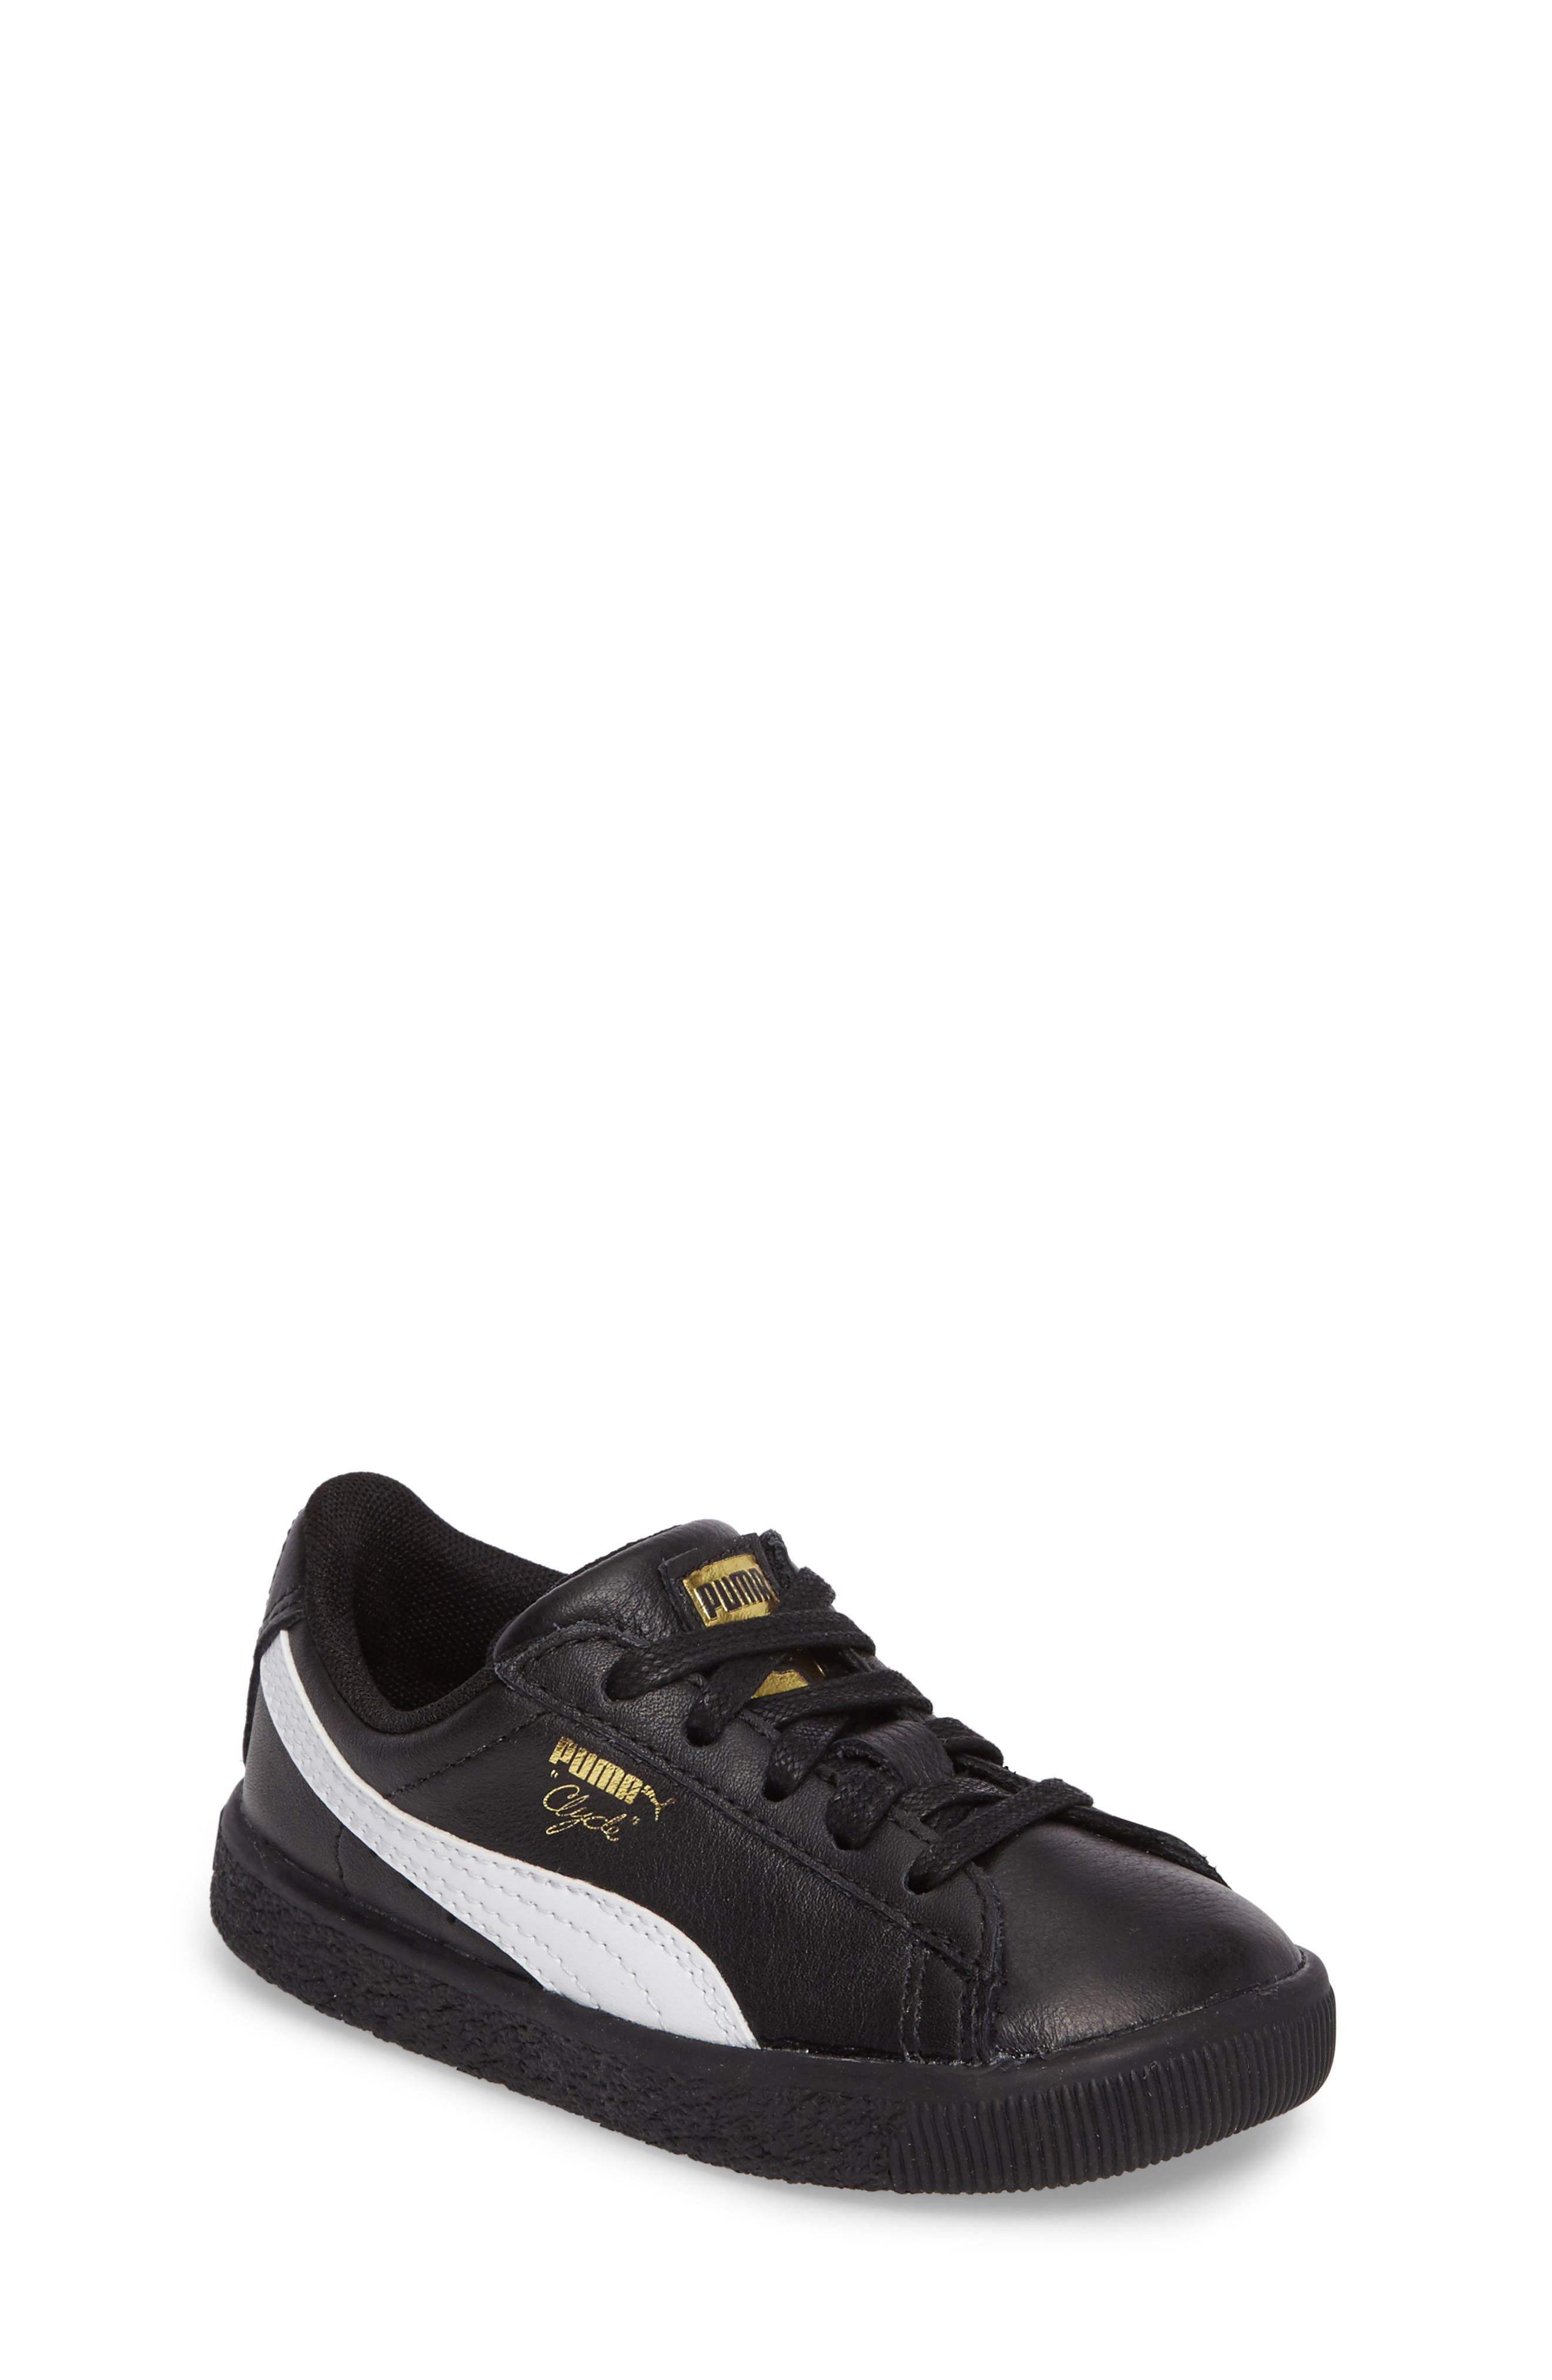 Clyde Core Foil Sneaker,                         Main,                         color, 001